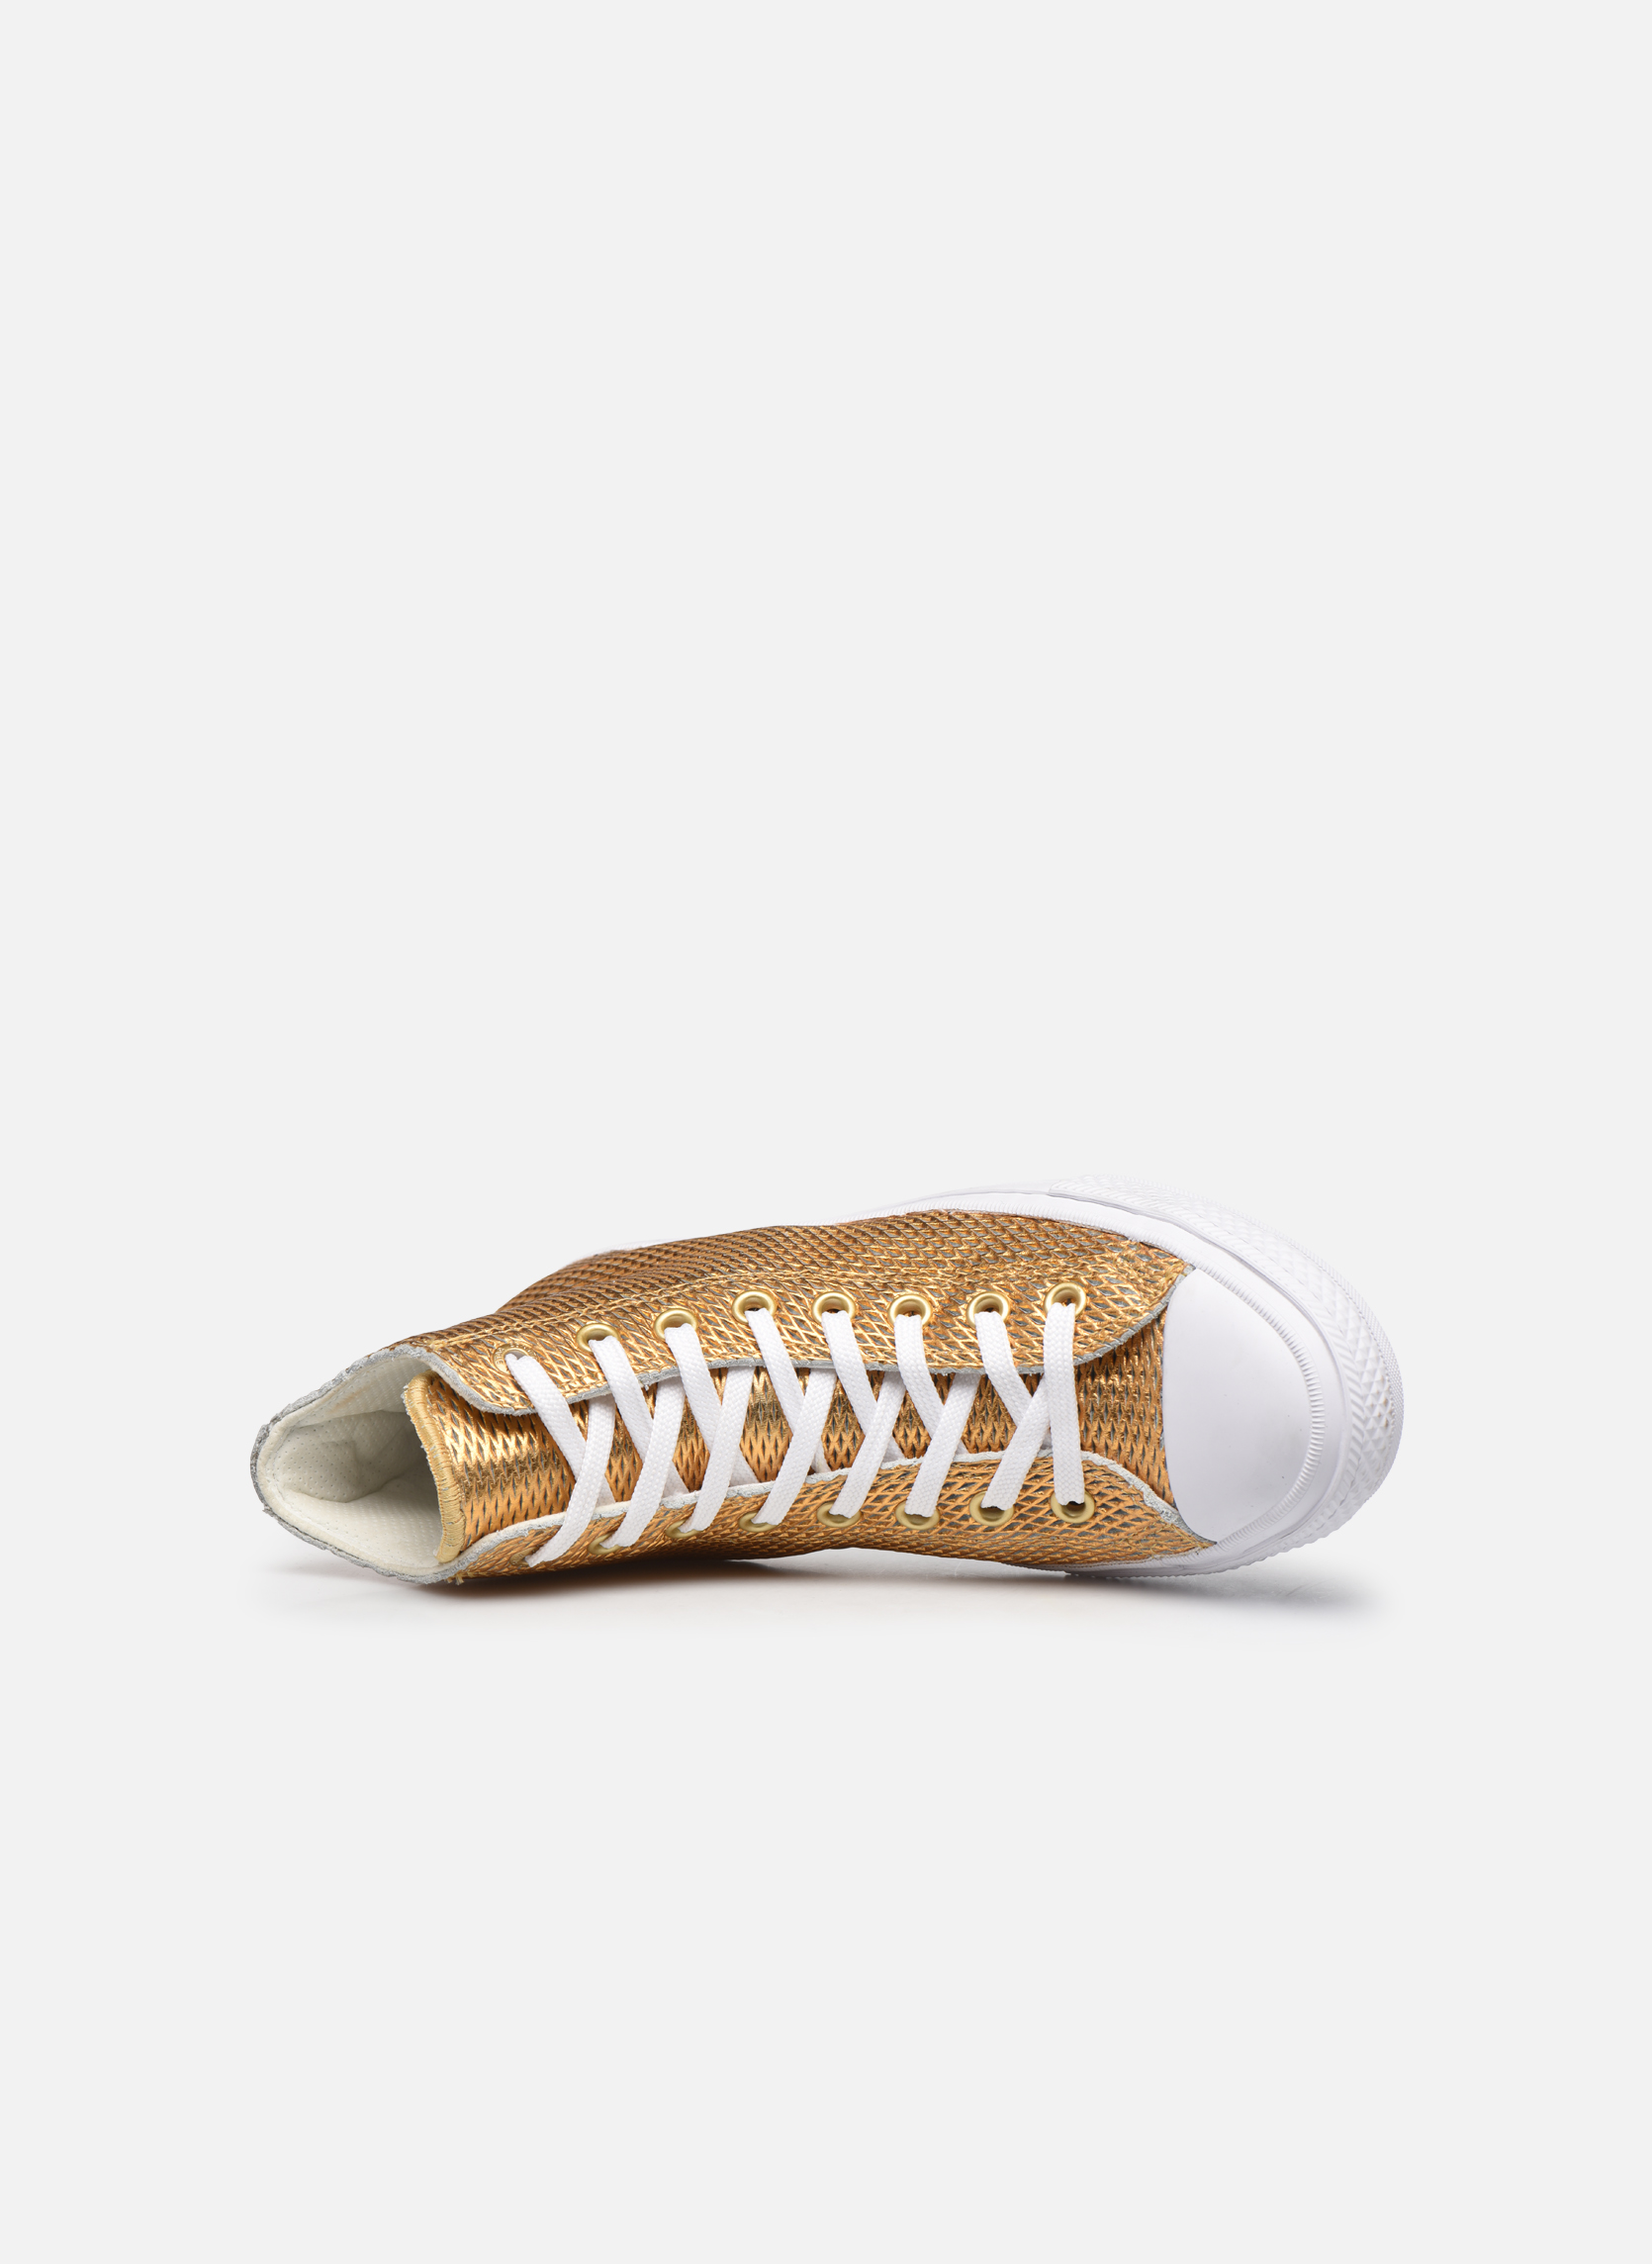 Deportivas Converse Chuck Taylor All Star II Hi Perf Metallic Leather Oro y bronce vista lateral izquierda